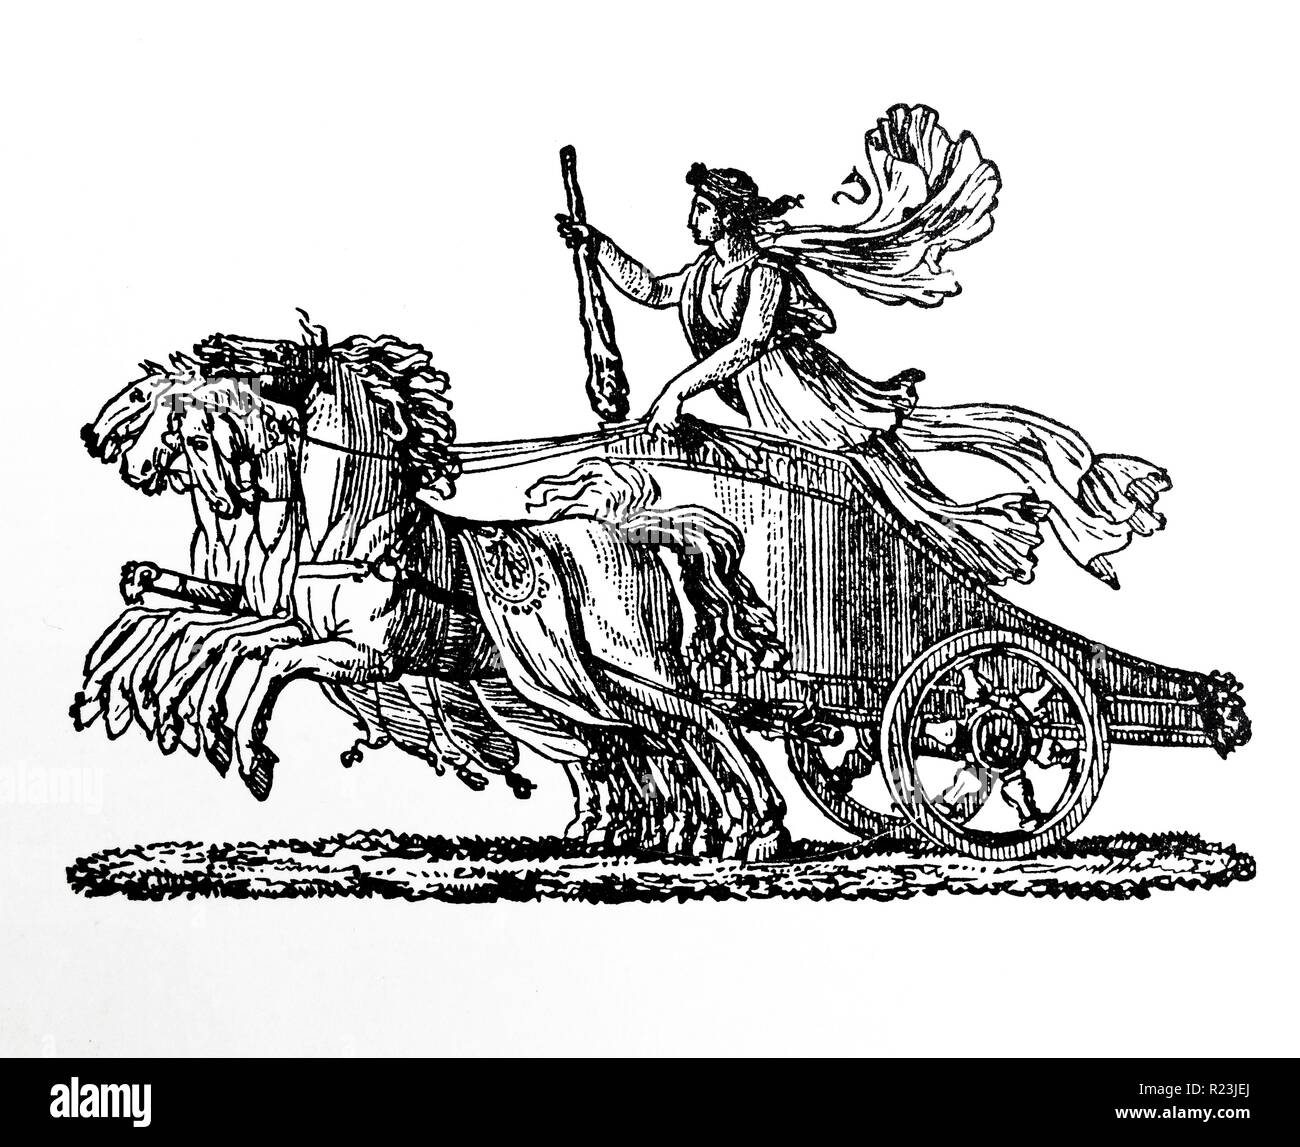 Fench woodcut from 1810, by Duplat. A woodcut is a relief printing process in which a relief-like wooden printing block is used to generate graphics - Stock Image